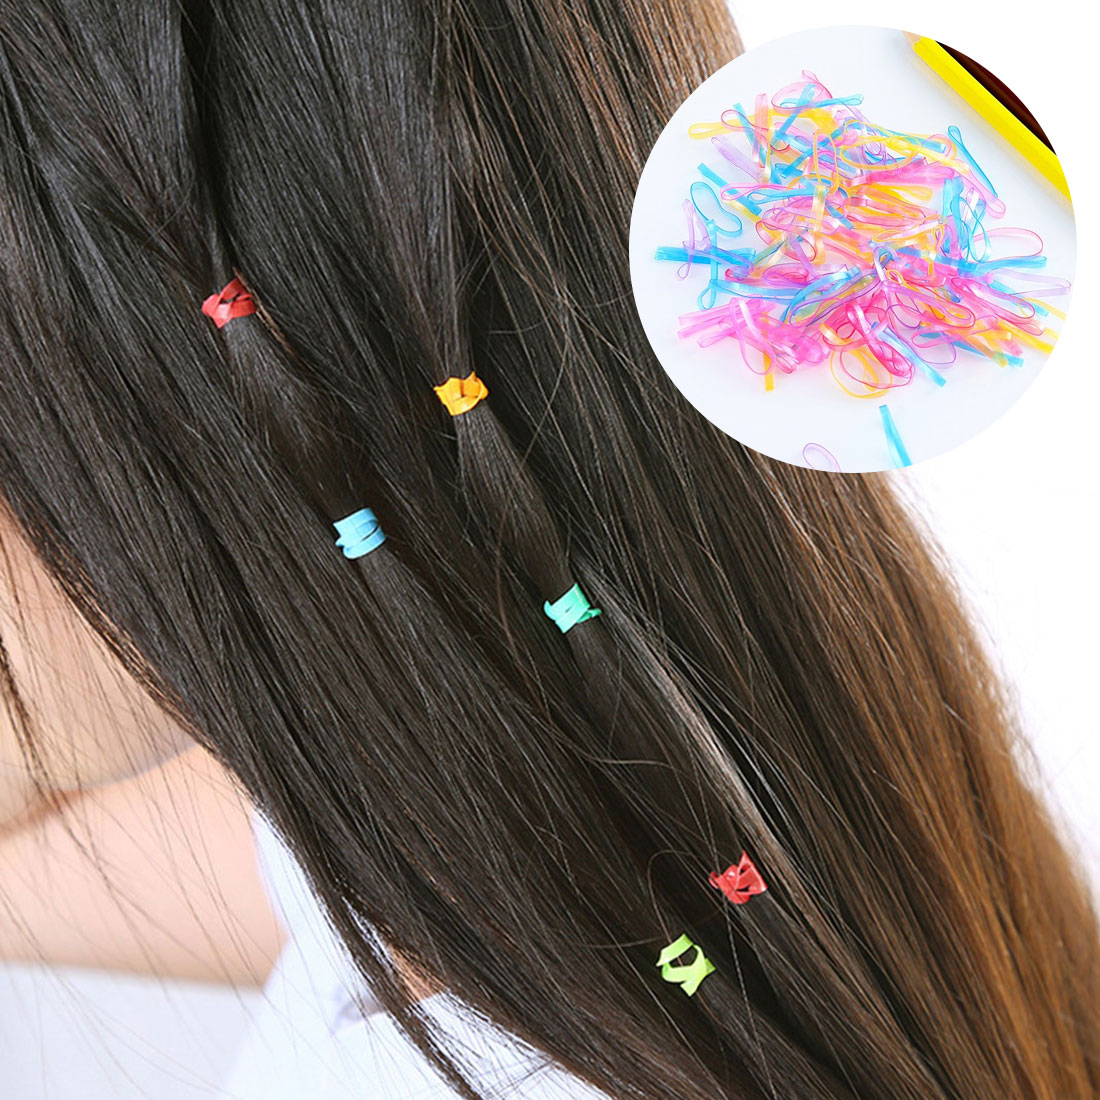 Diameter 1.6cm /2.2cm Resin Rubber Band Hair Band Baby Girls Colorful Small Rubber String High Elasticity Elastic Hair Circle